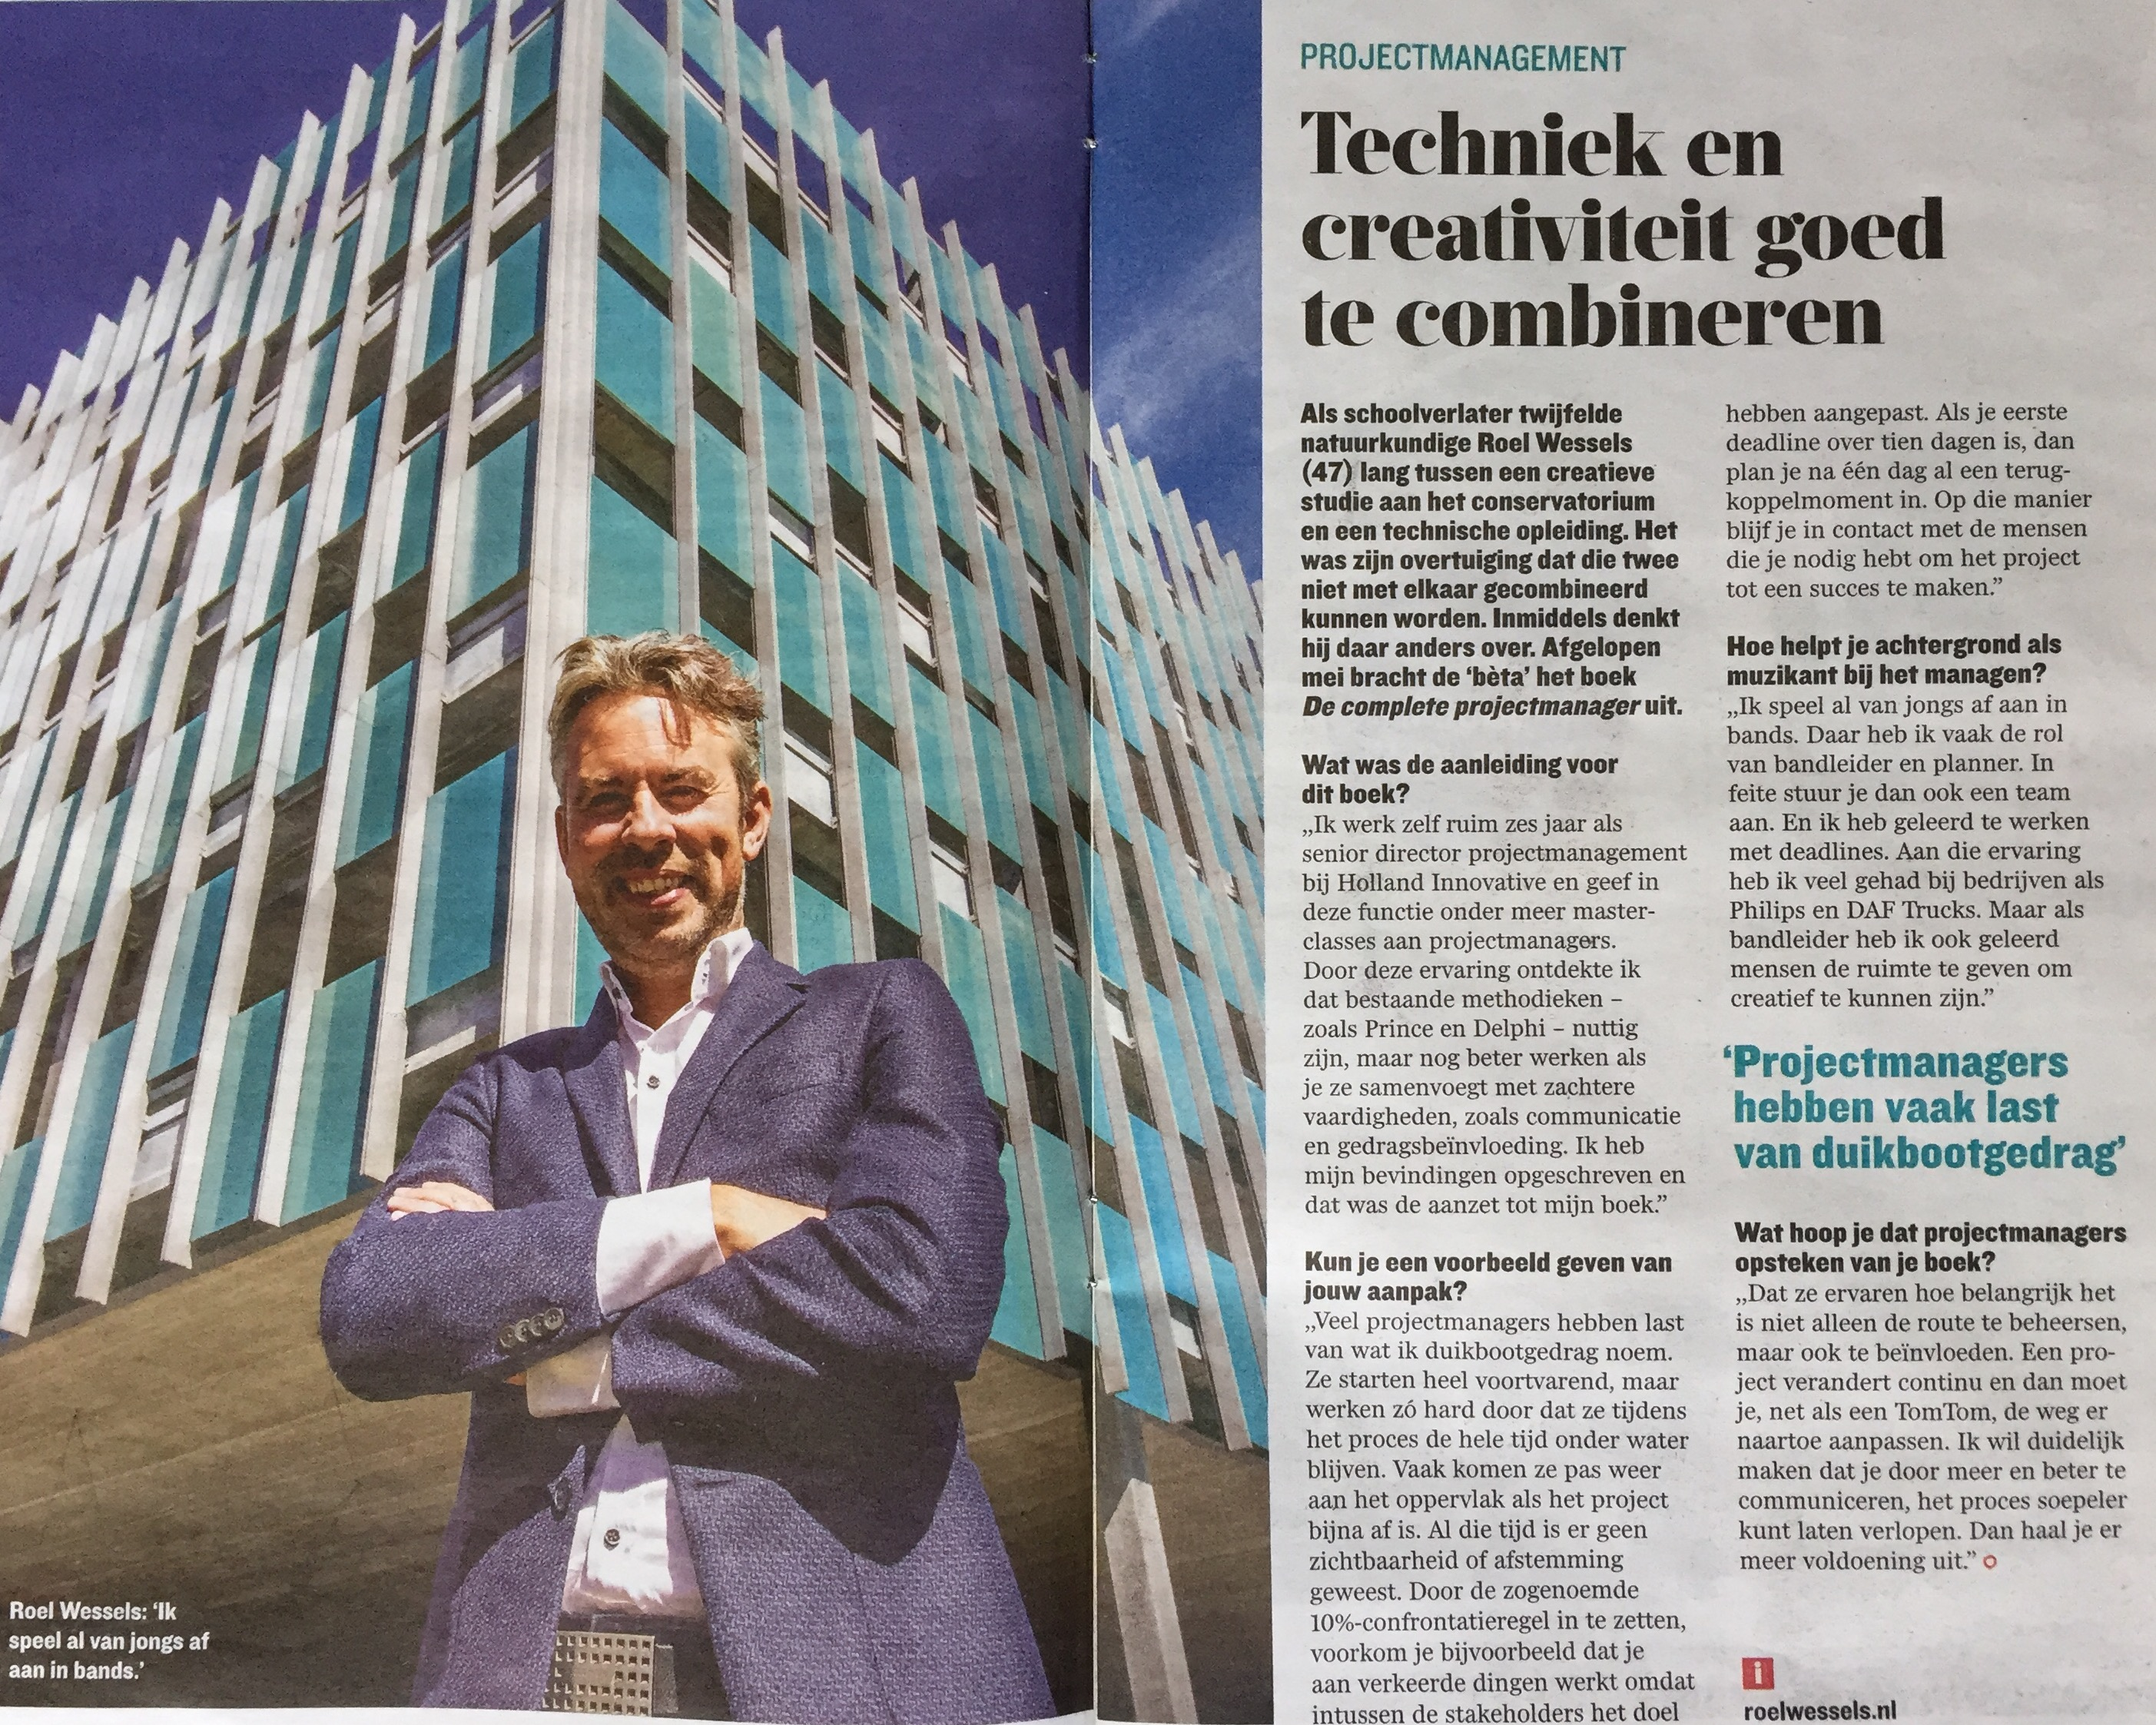 deondernemer-cover-roel-wessels-de-complete-projectmanager-interview